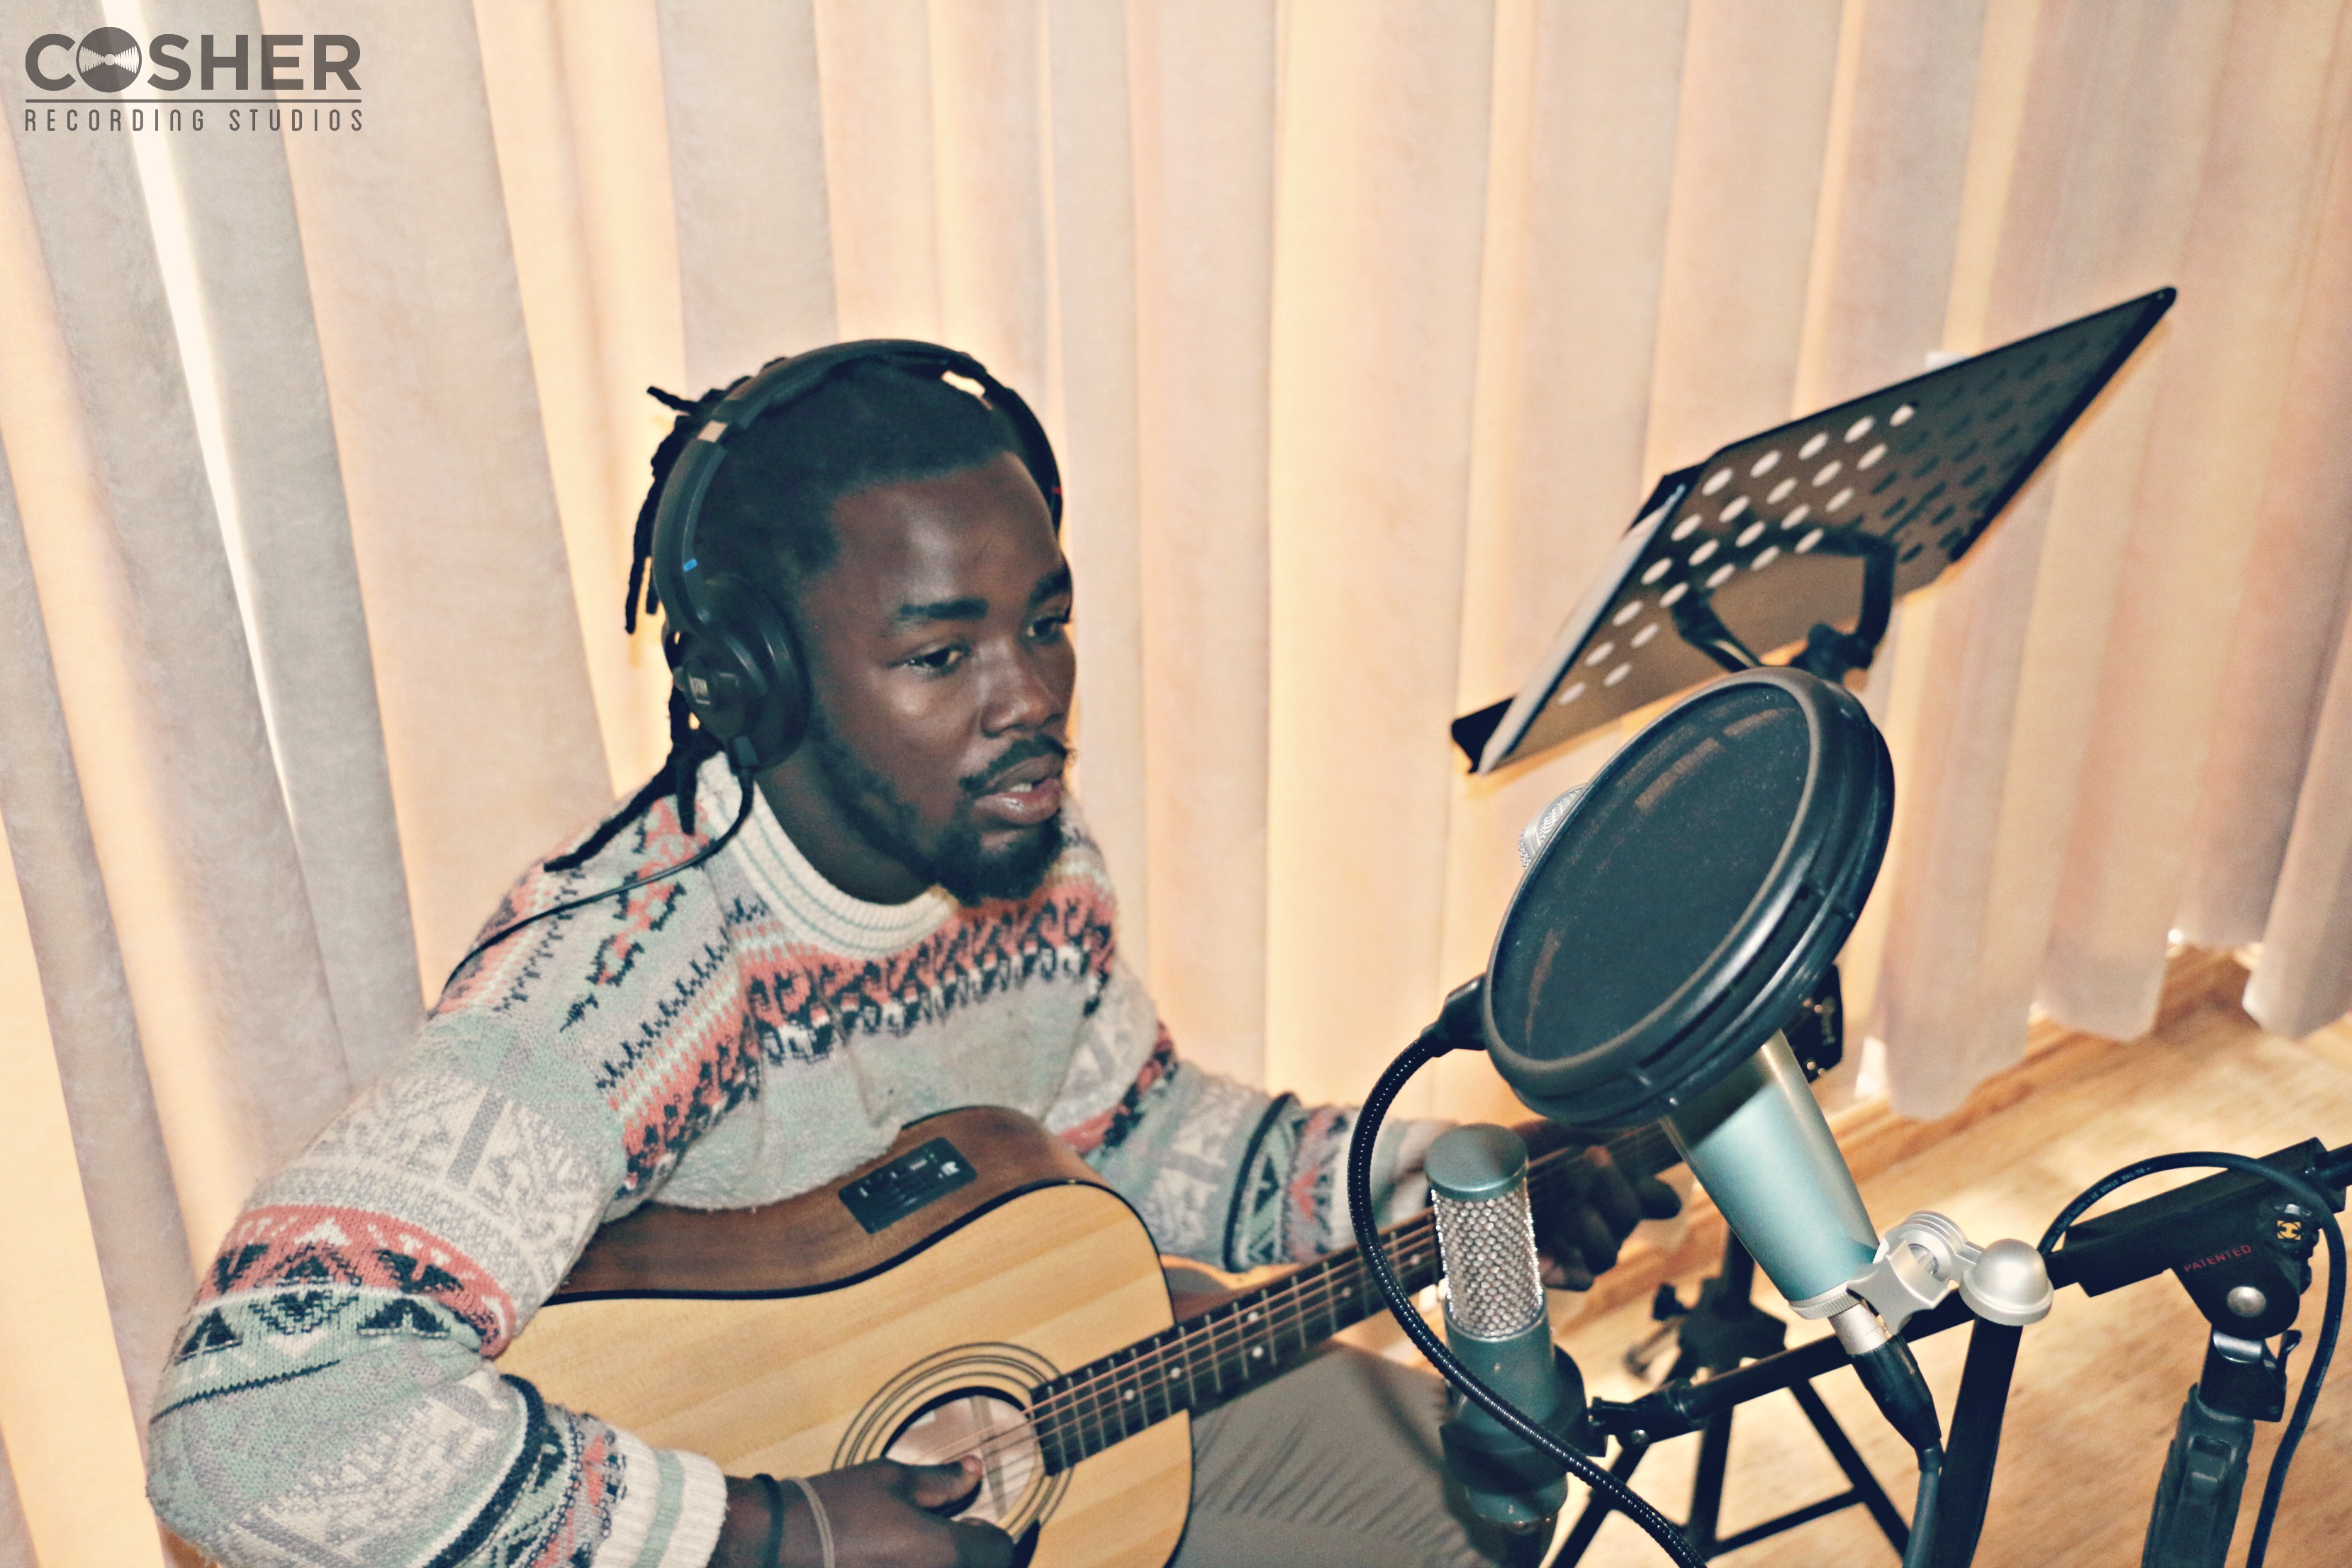 Wandile Mbambeni at Cosher Recording Studios